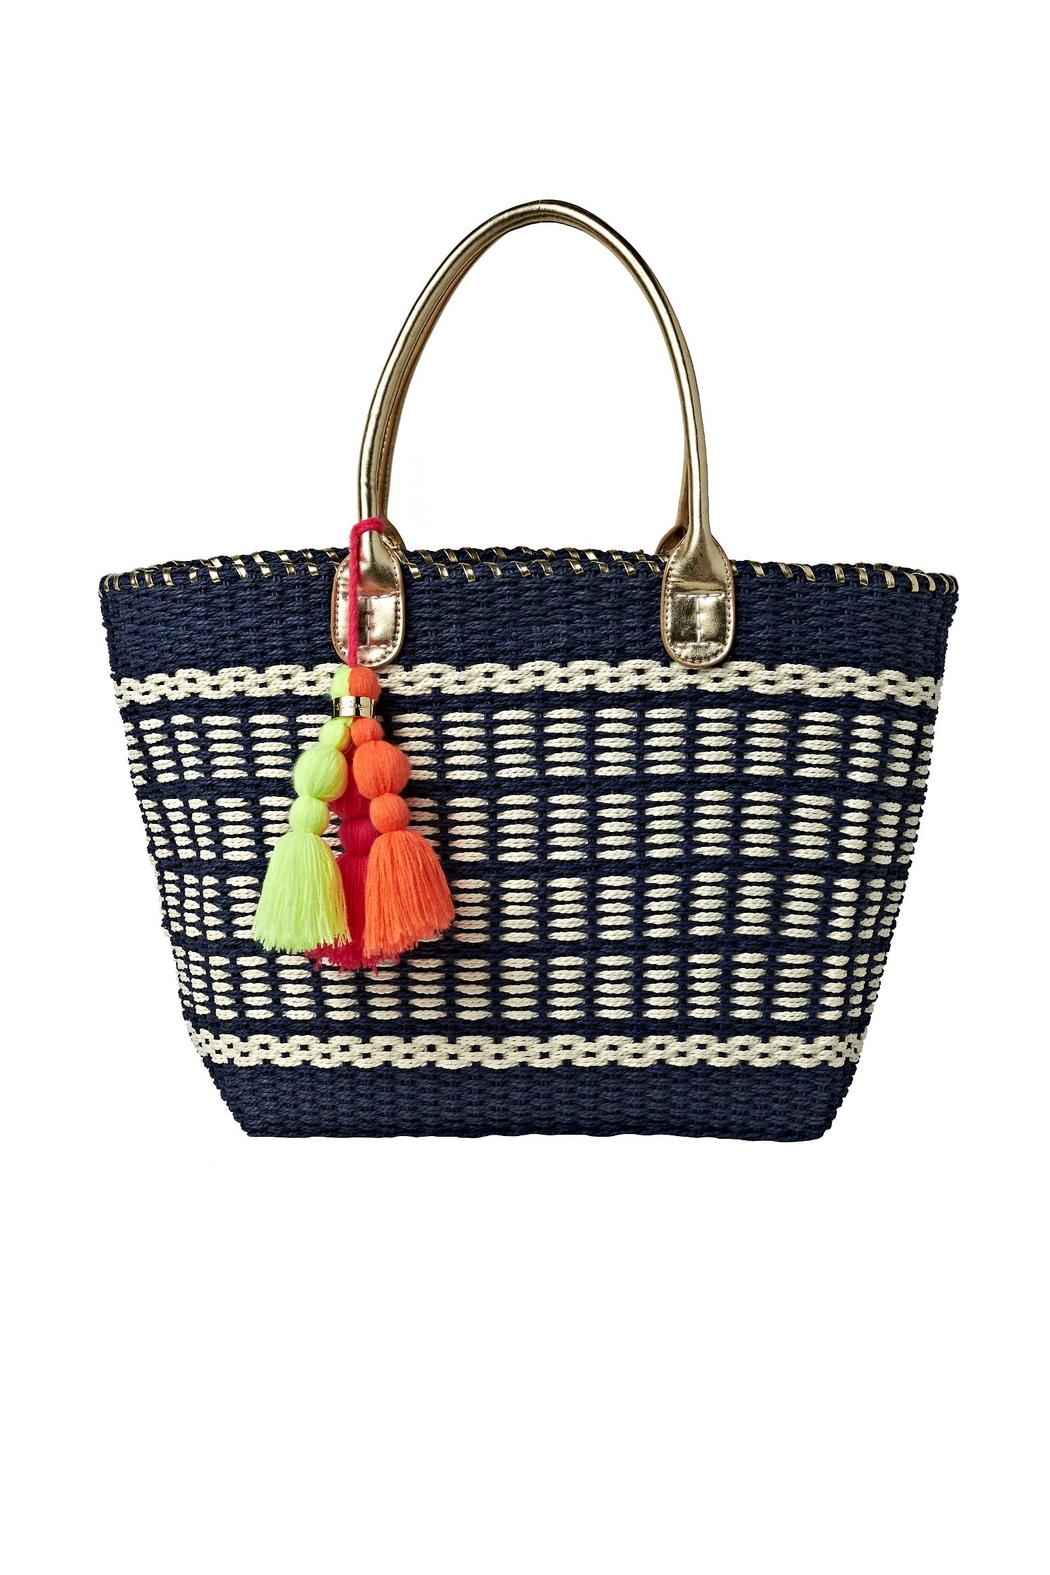 Lilly Pulitzer Coastal Straw Tote Bag from Sandestin Golf and ...